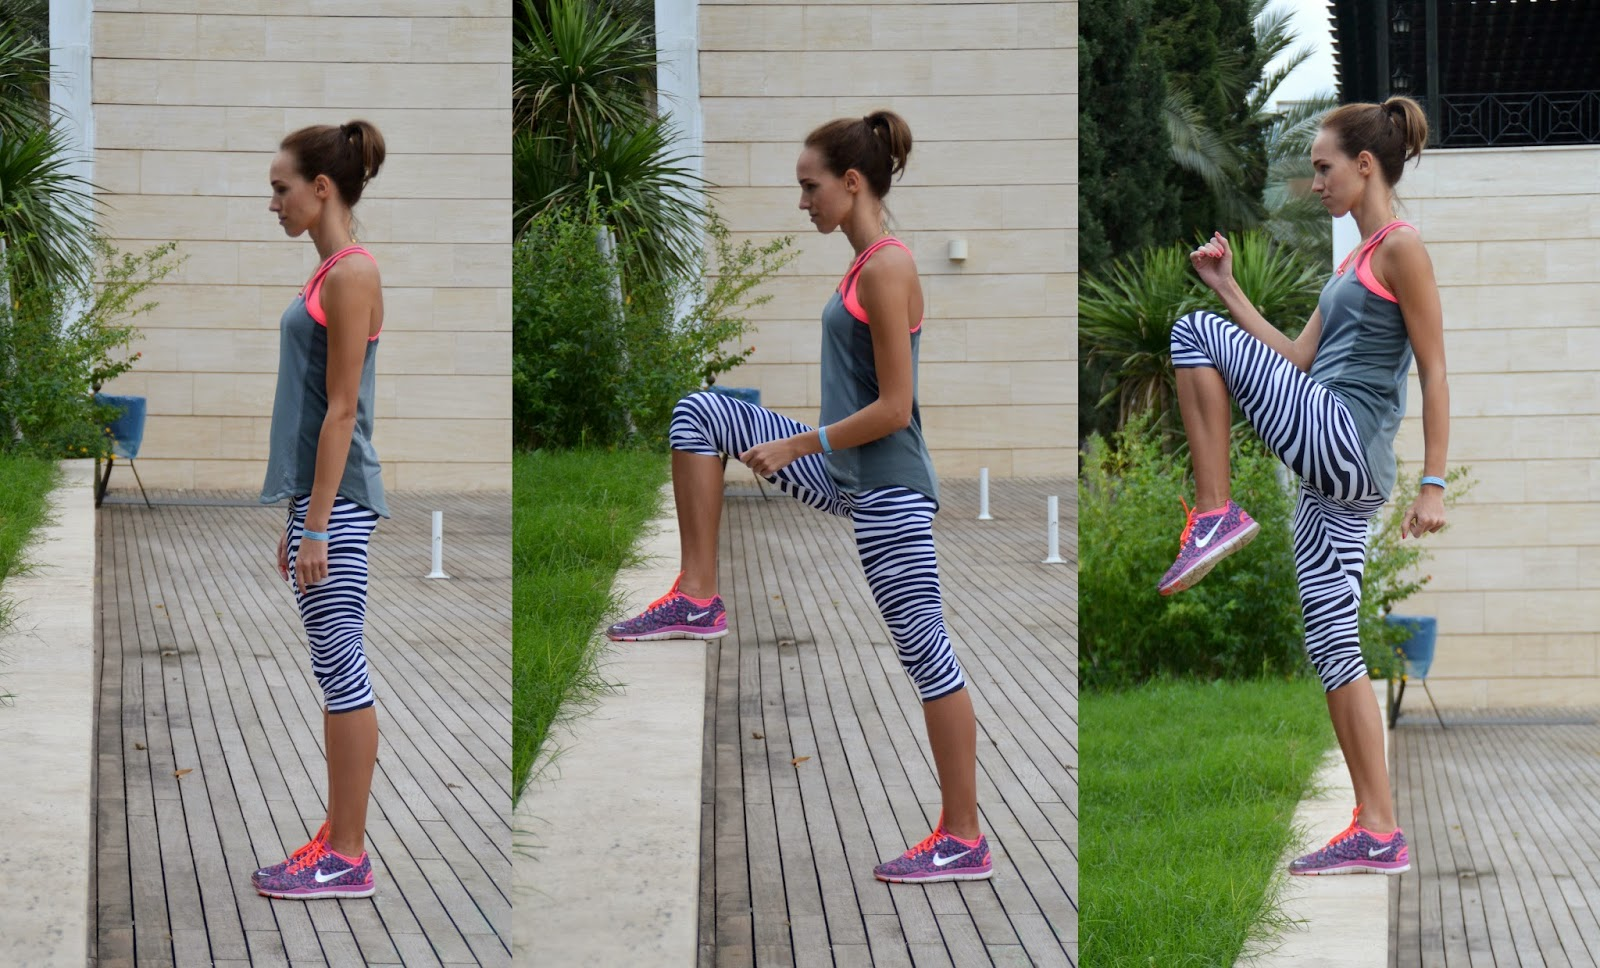 outdoors-butt-workout-step-ups